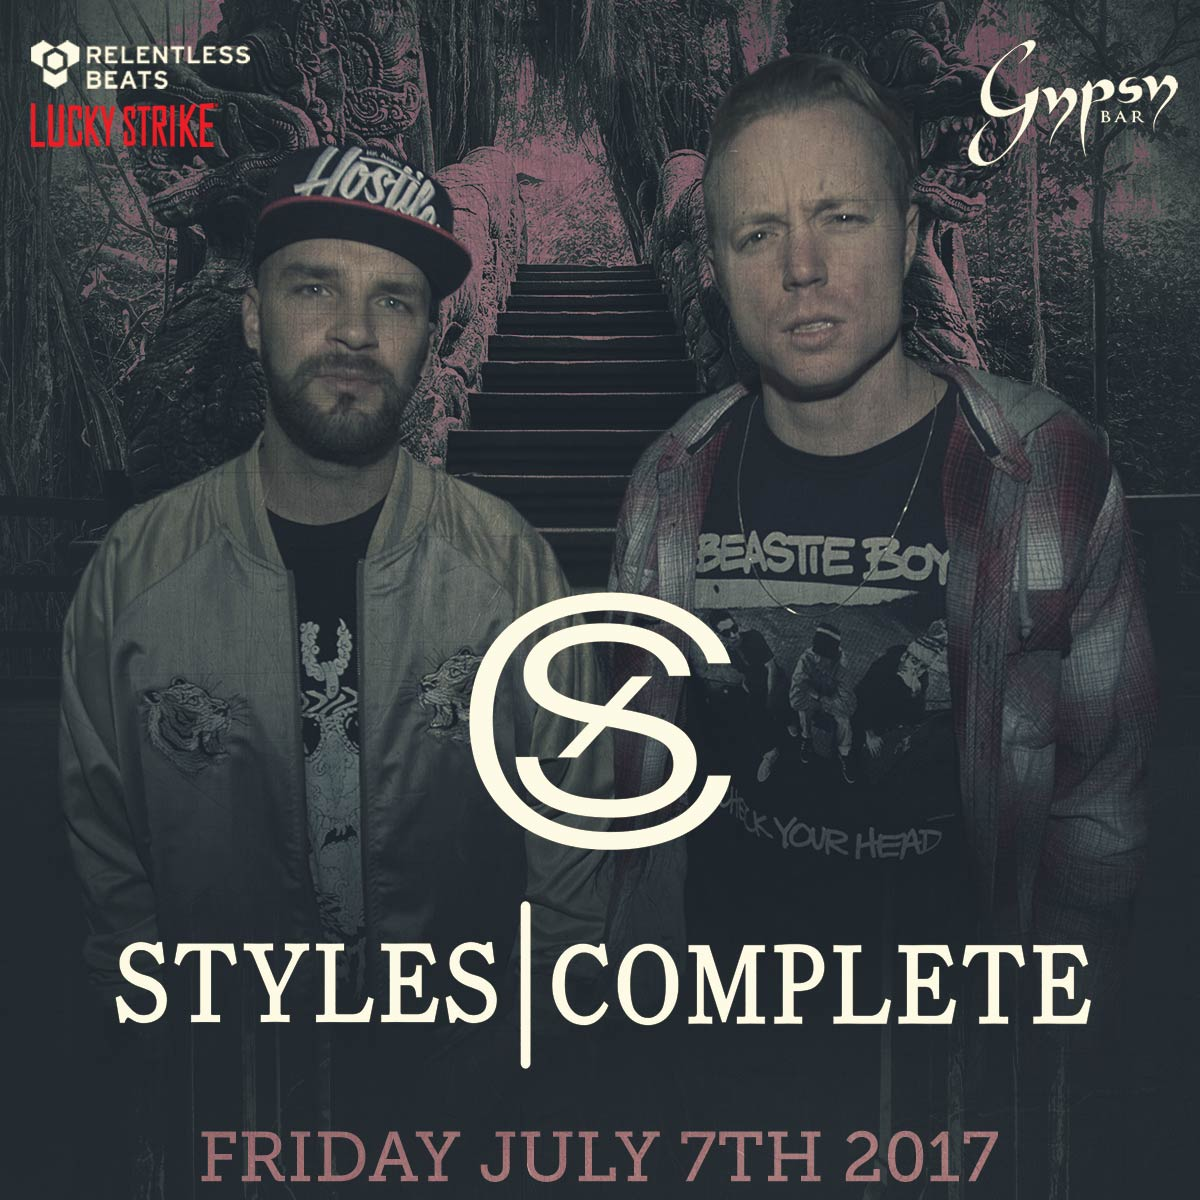 Flyer for Styles & Complete